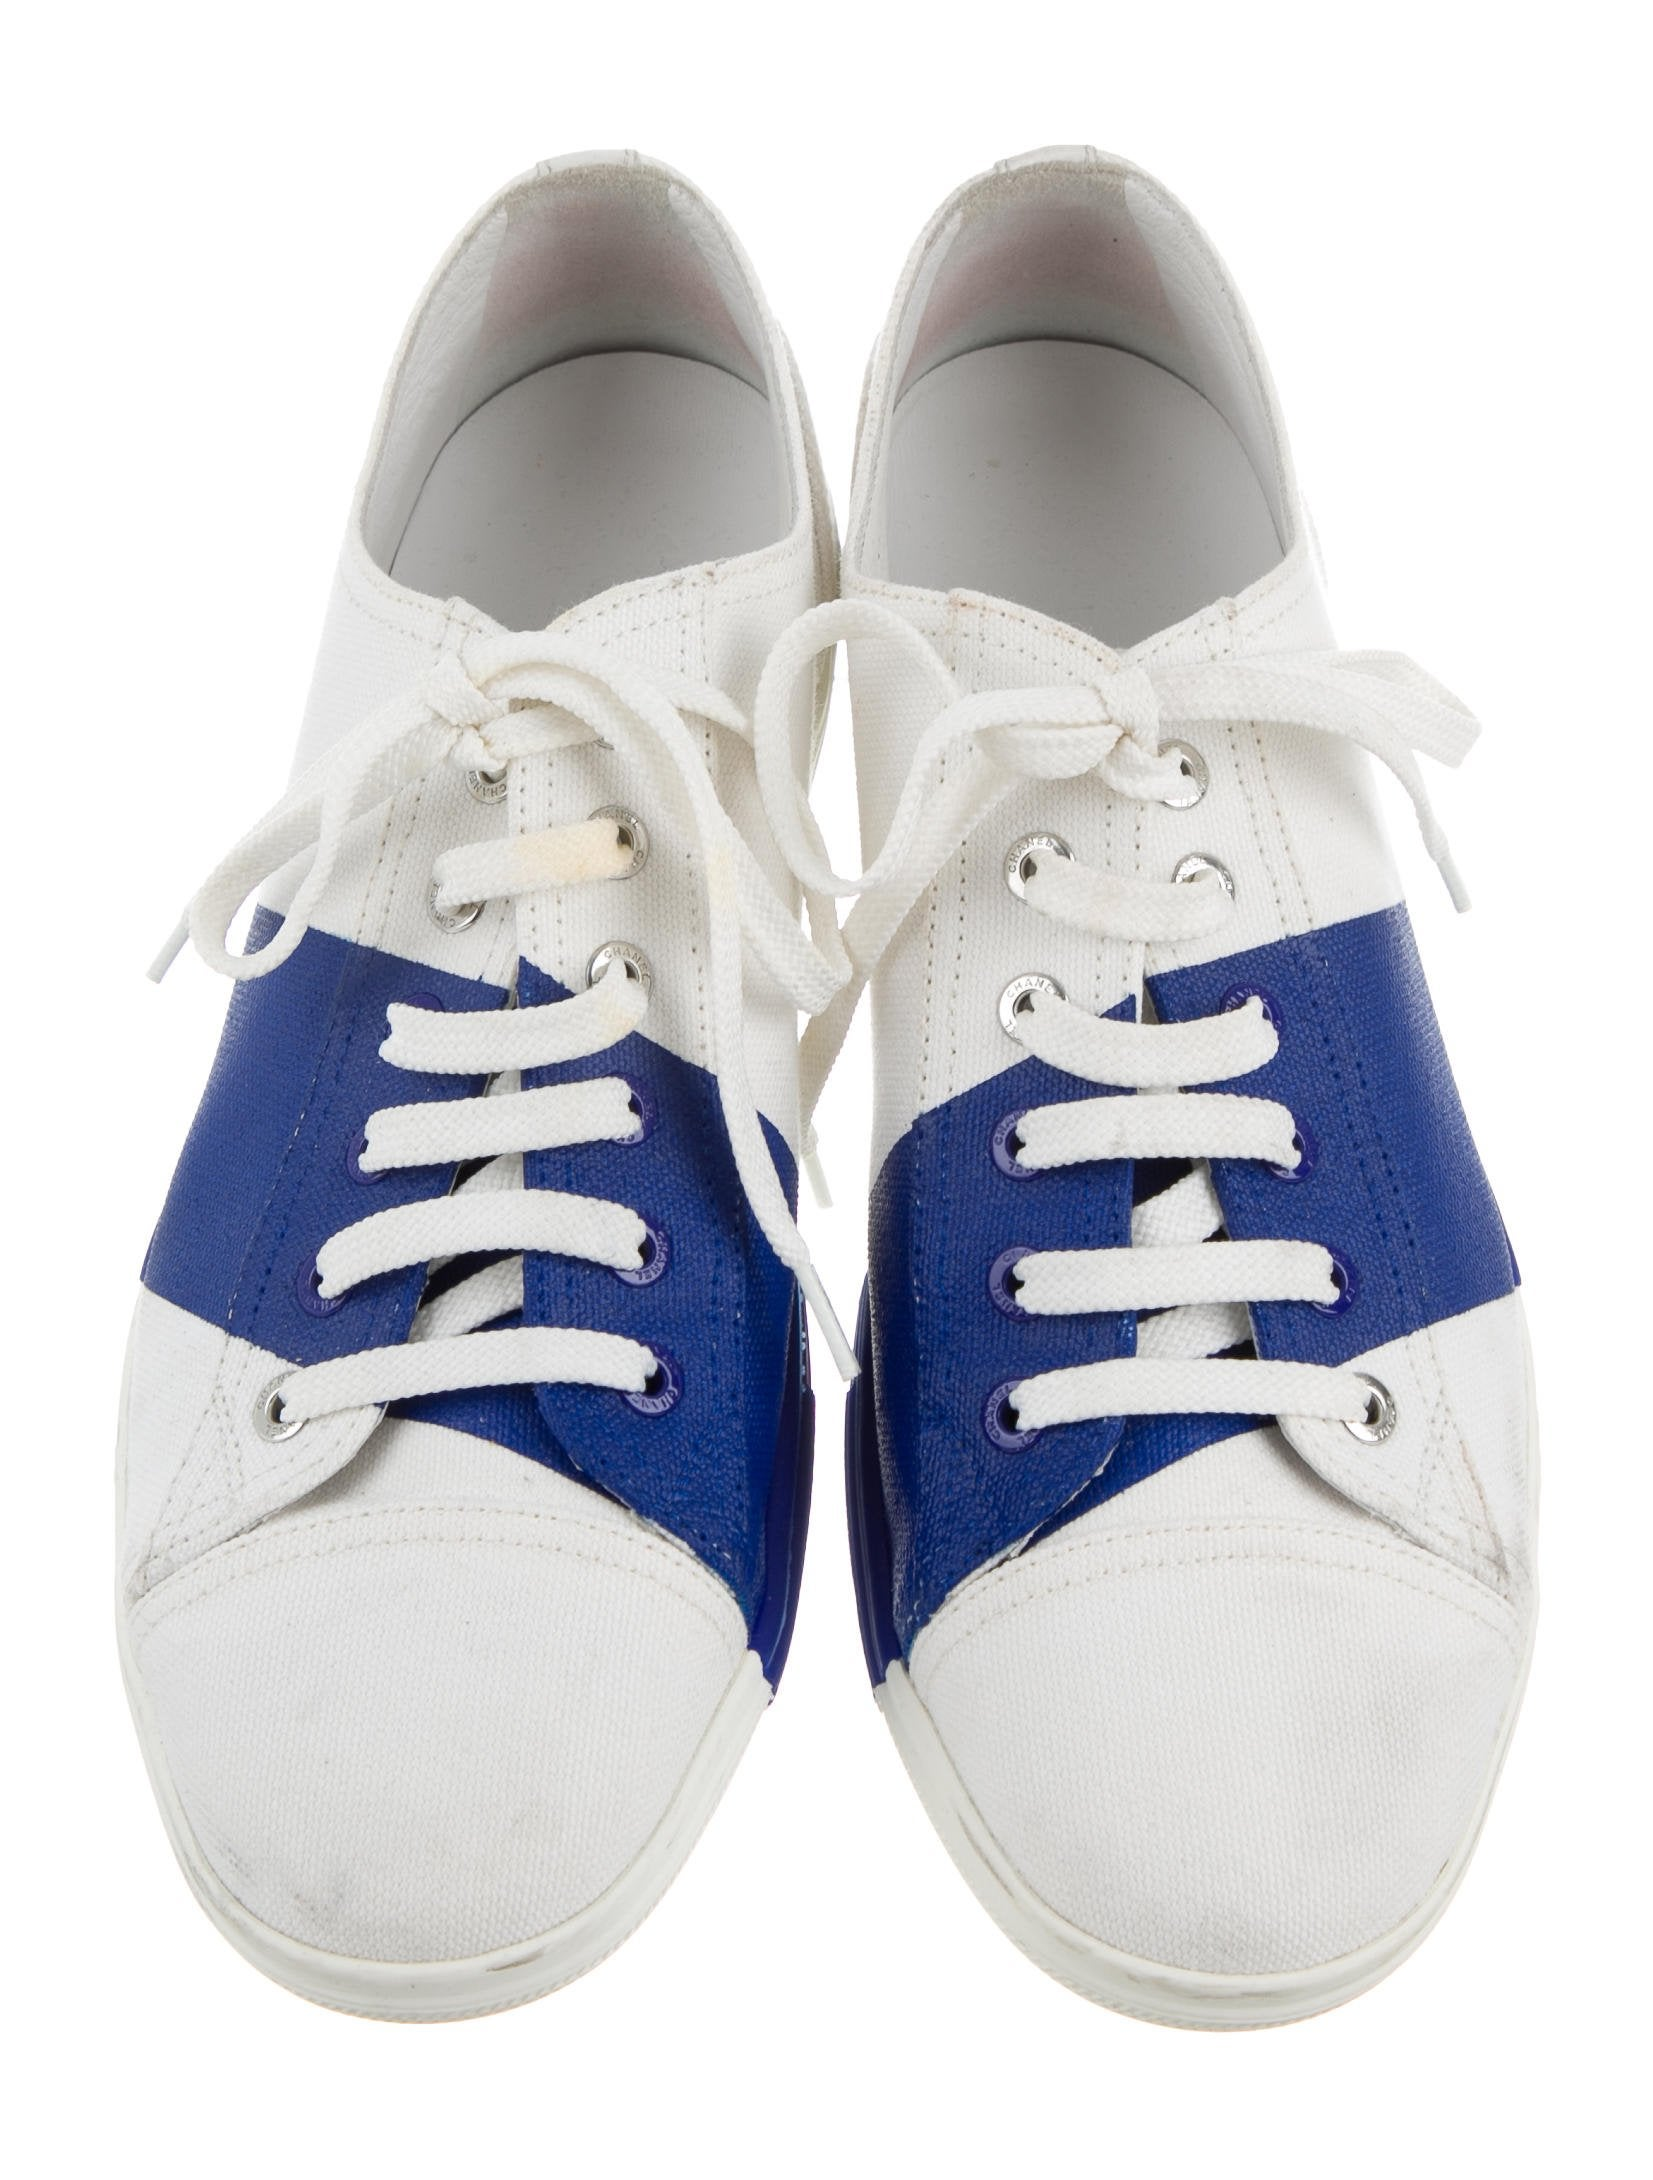 chanel canvas low top sneakers shoes cha189522 the